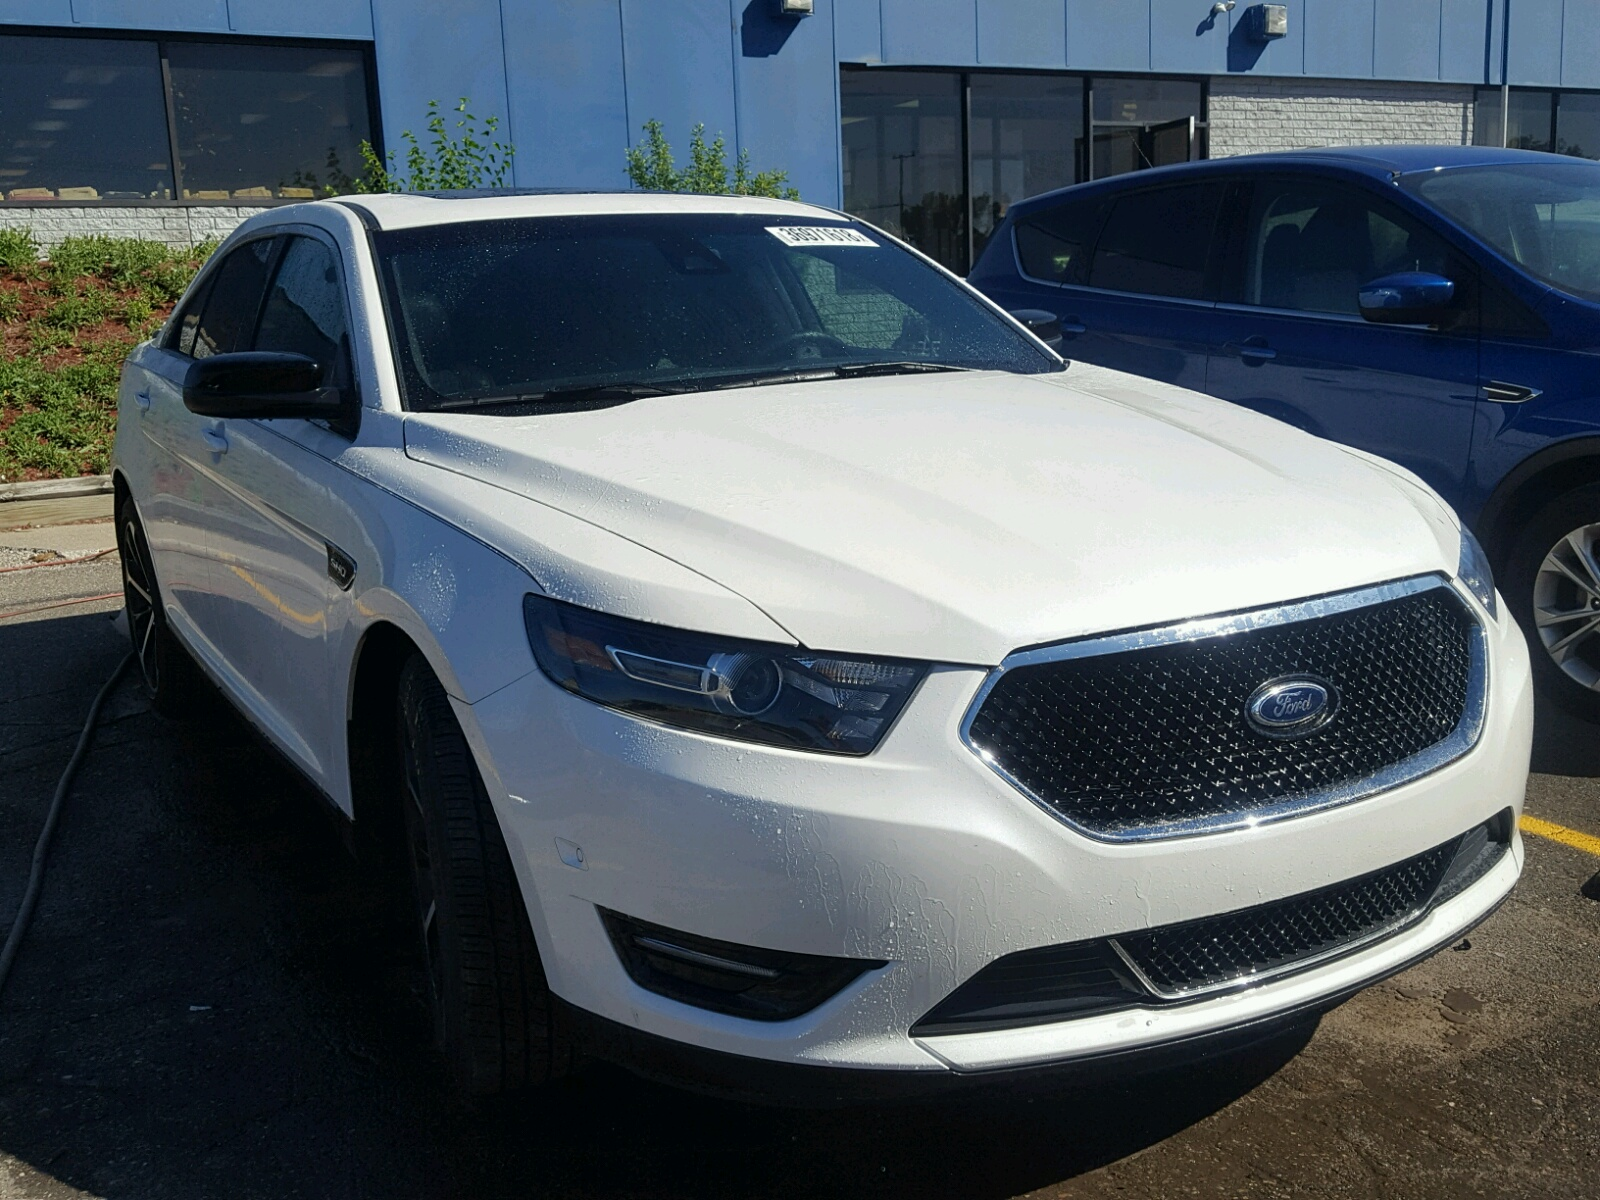 2016 Ford Taurus SHO for sale at Copart Woodhaven MI Lot